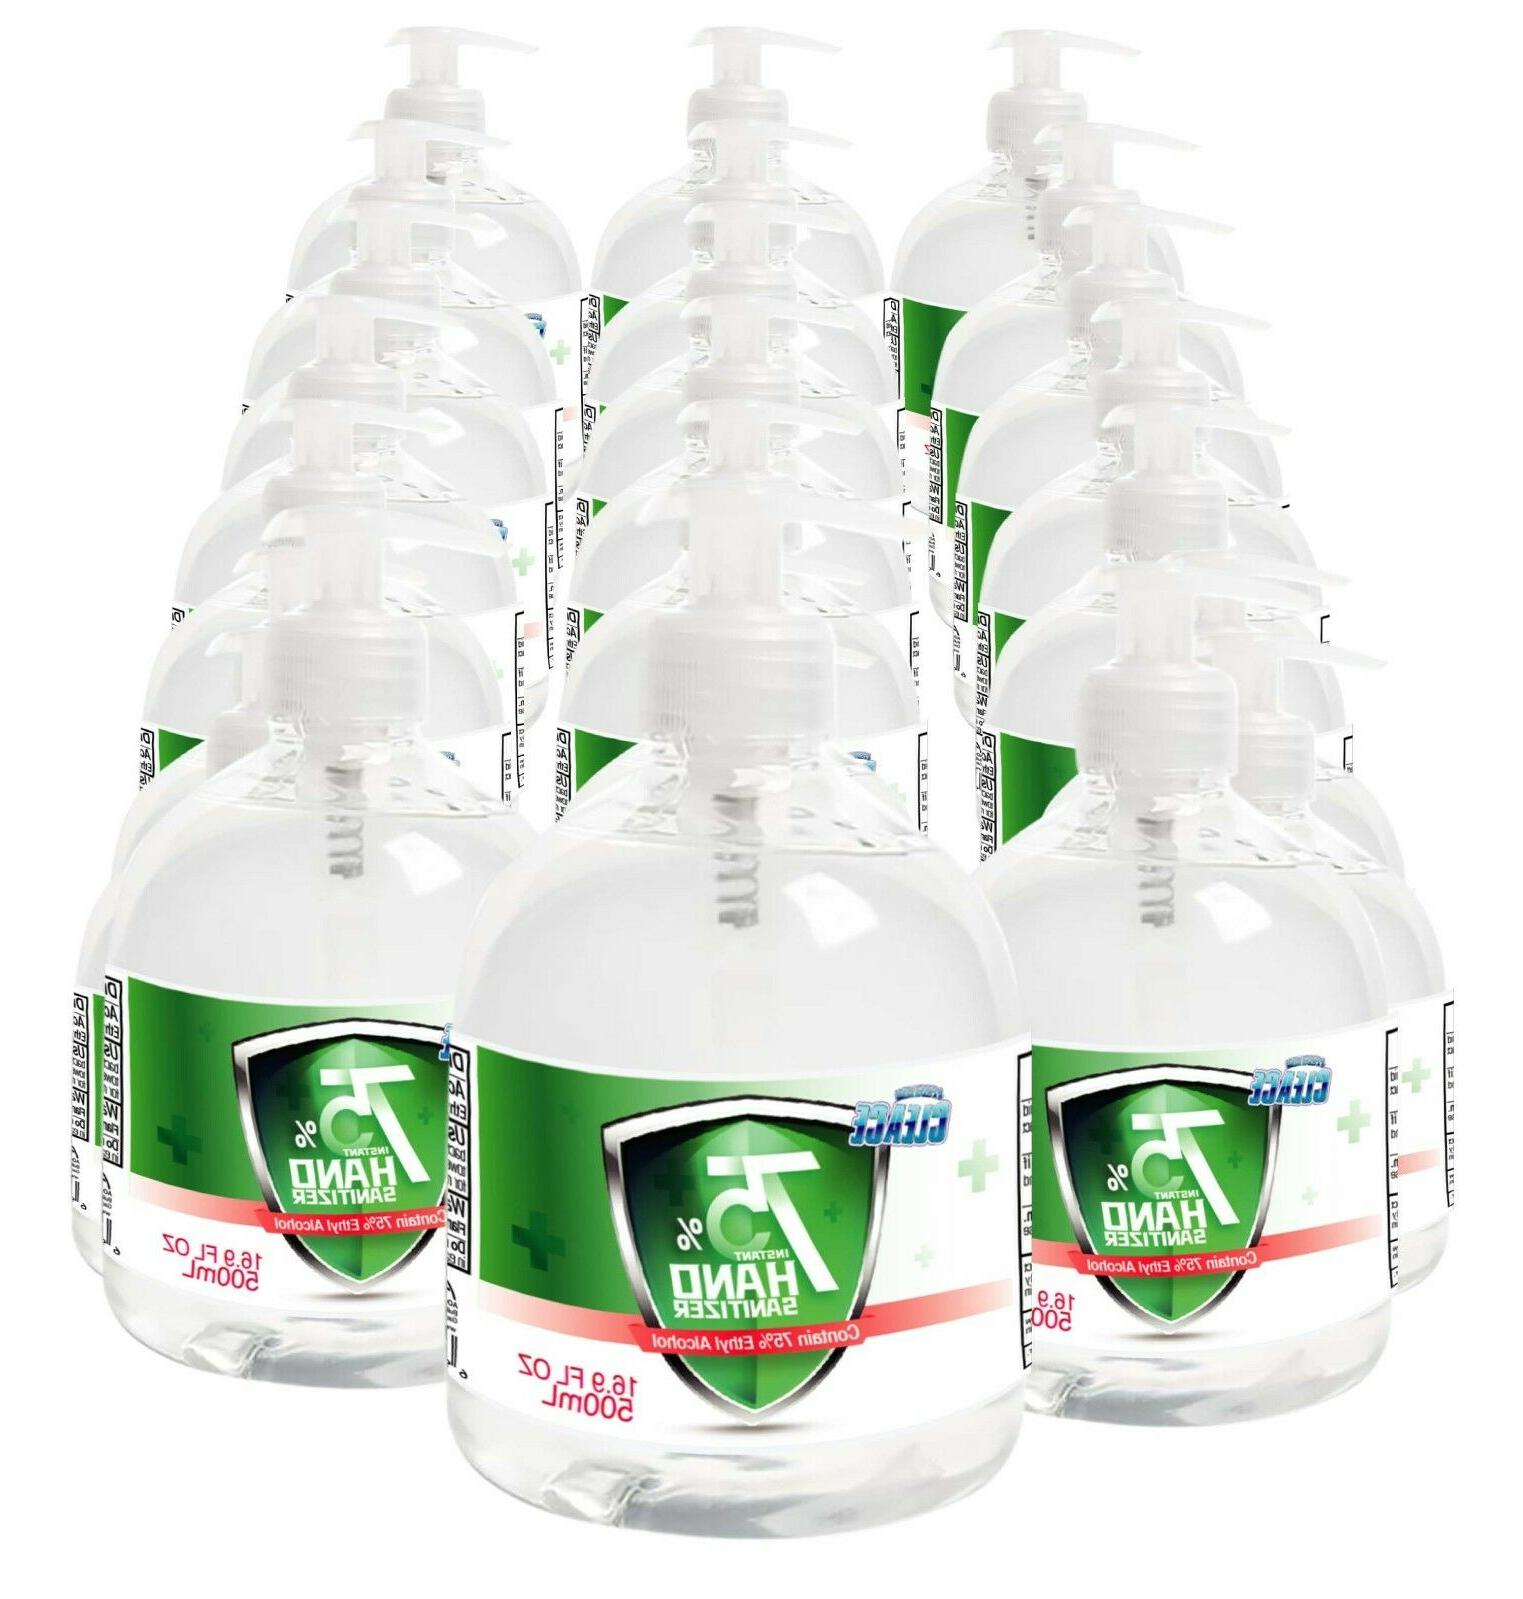 Cleace 75% Sanitizer large oz, available